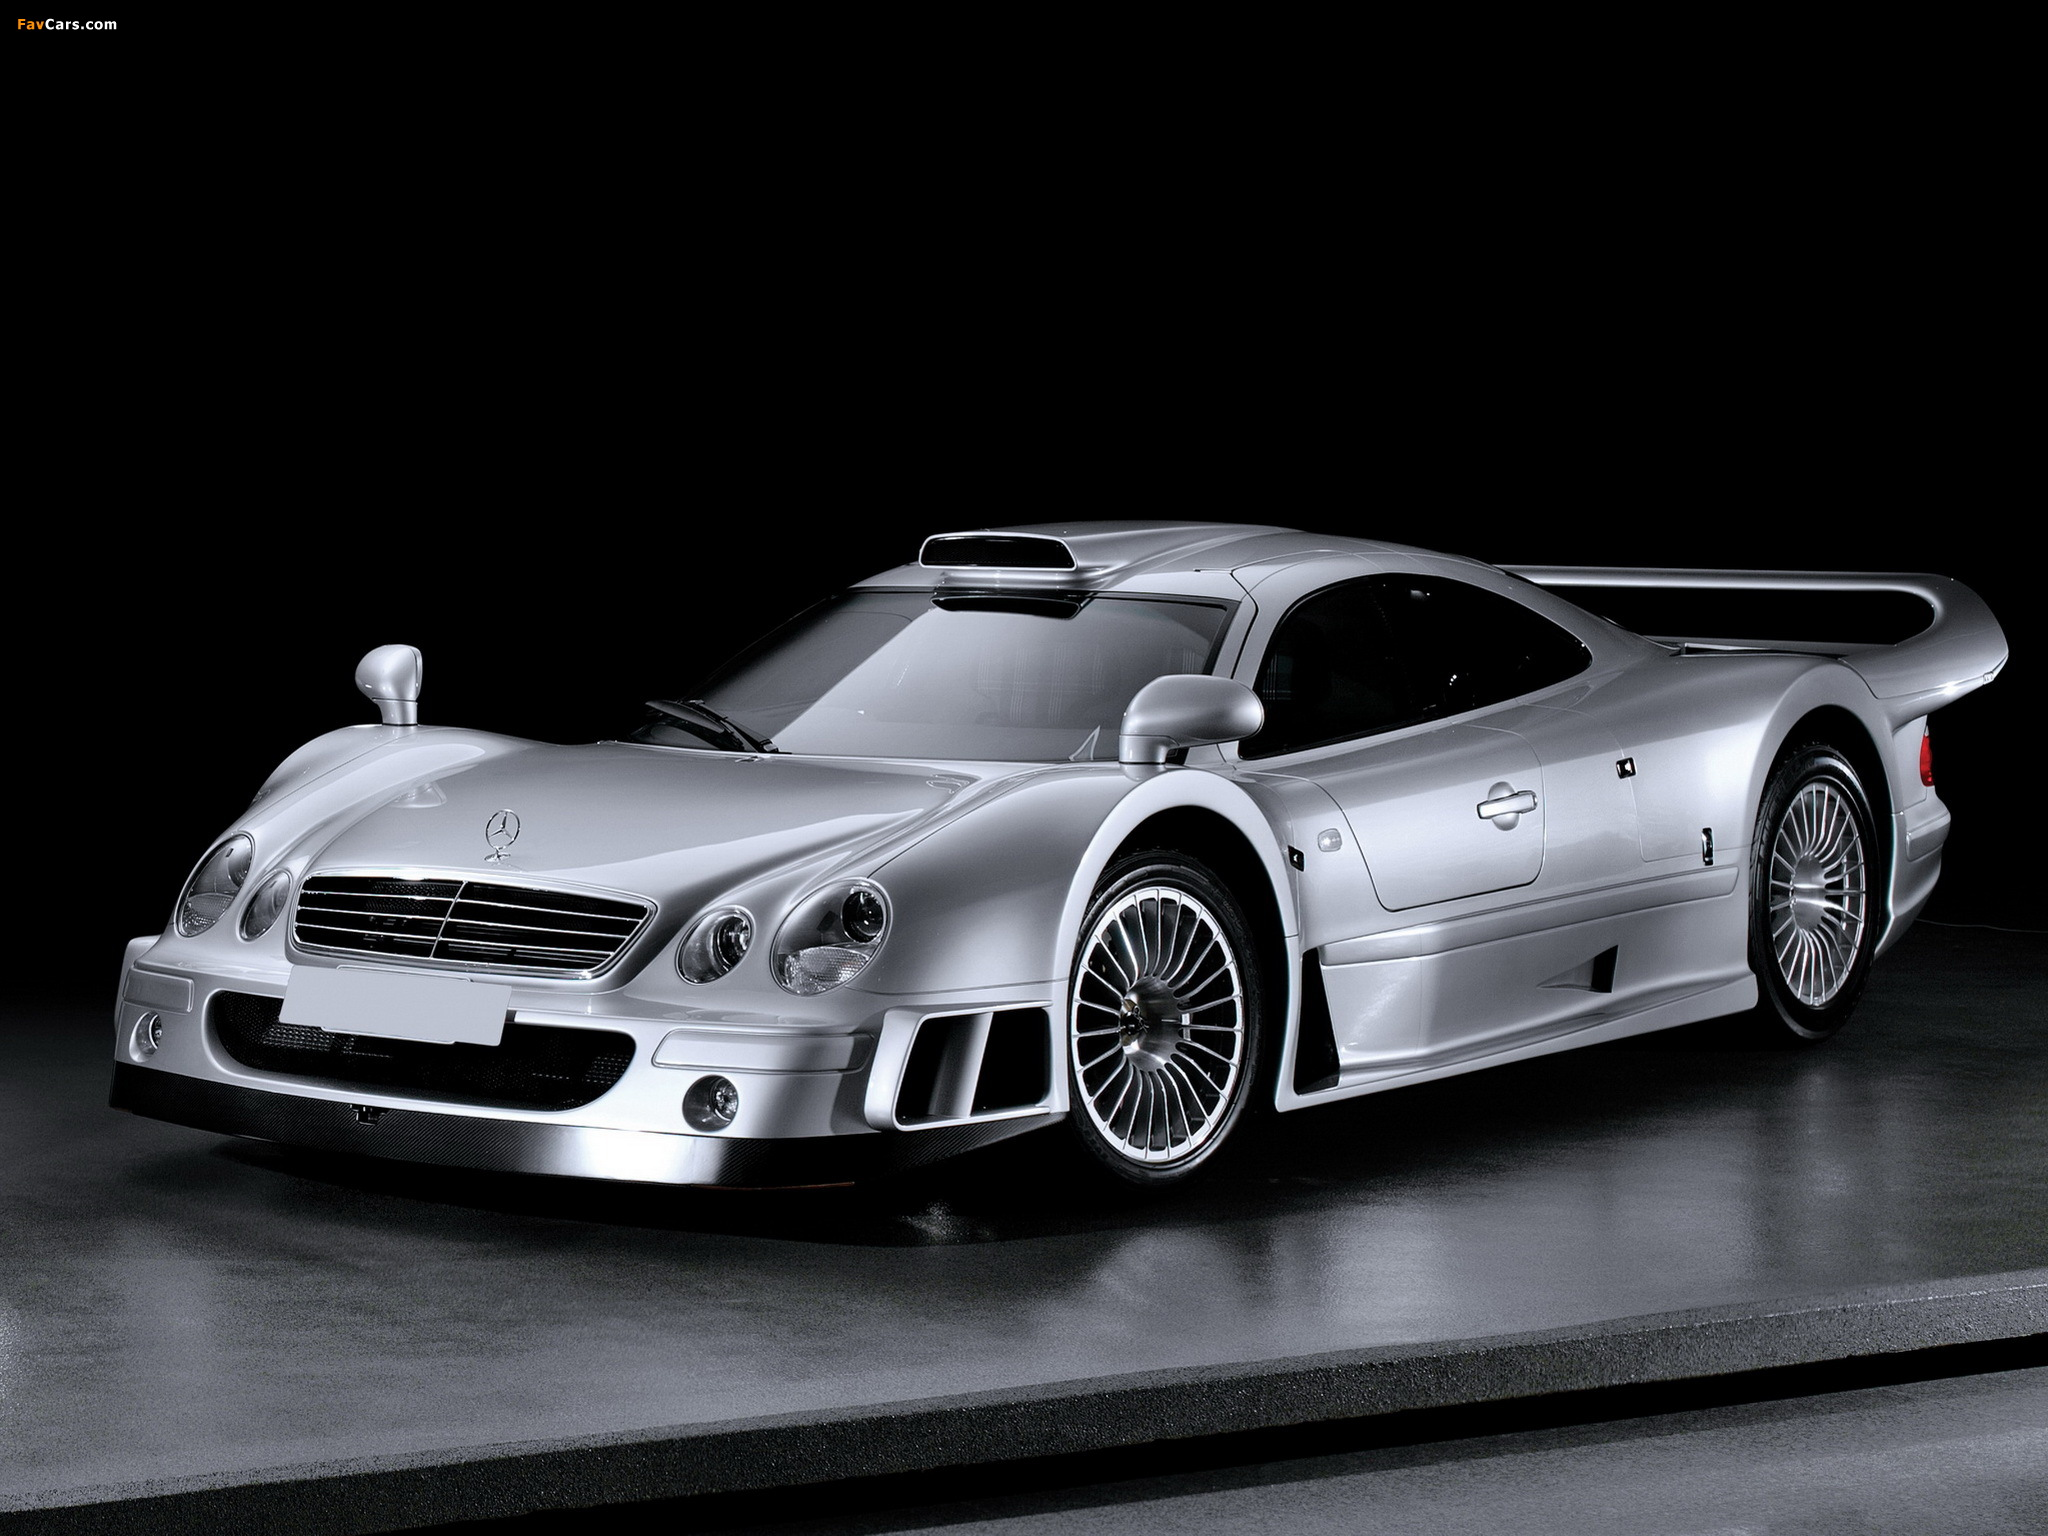 Mercedes benz clk gtr amg road version 1999 pictures for Mercedes benz clk 1999